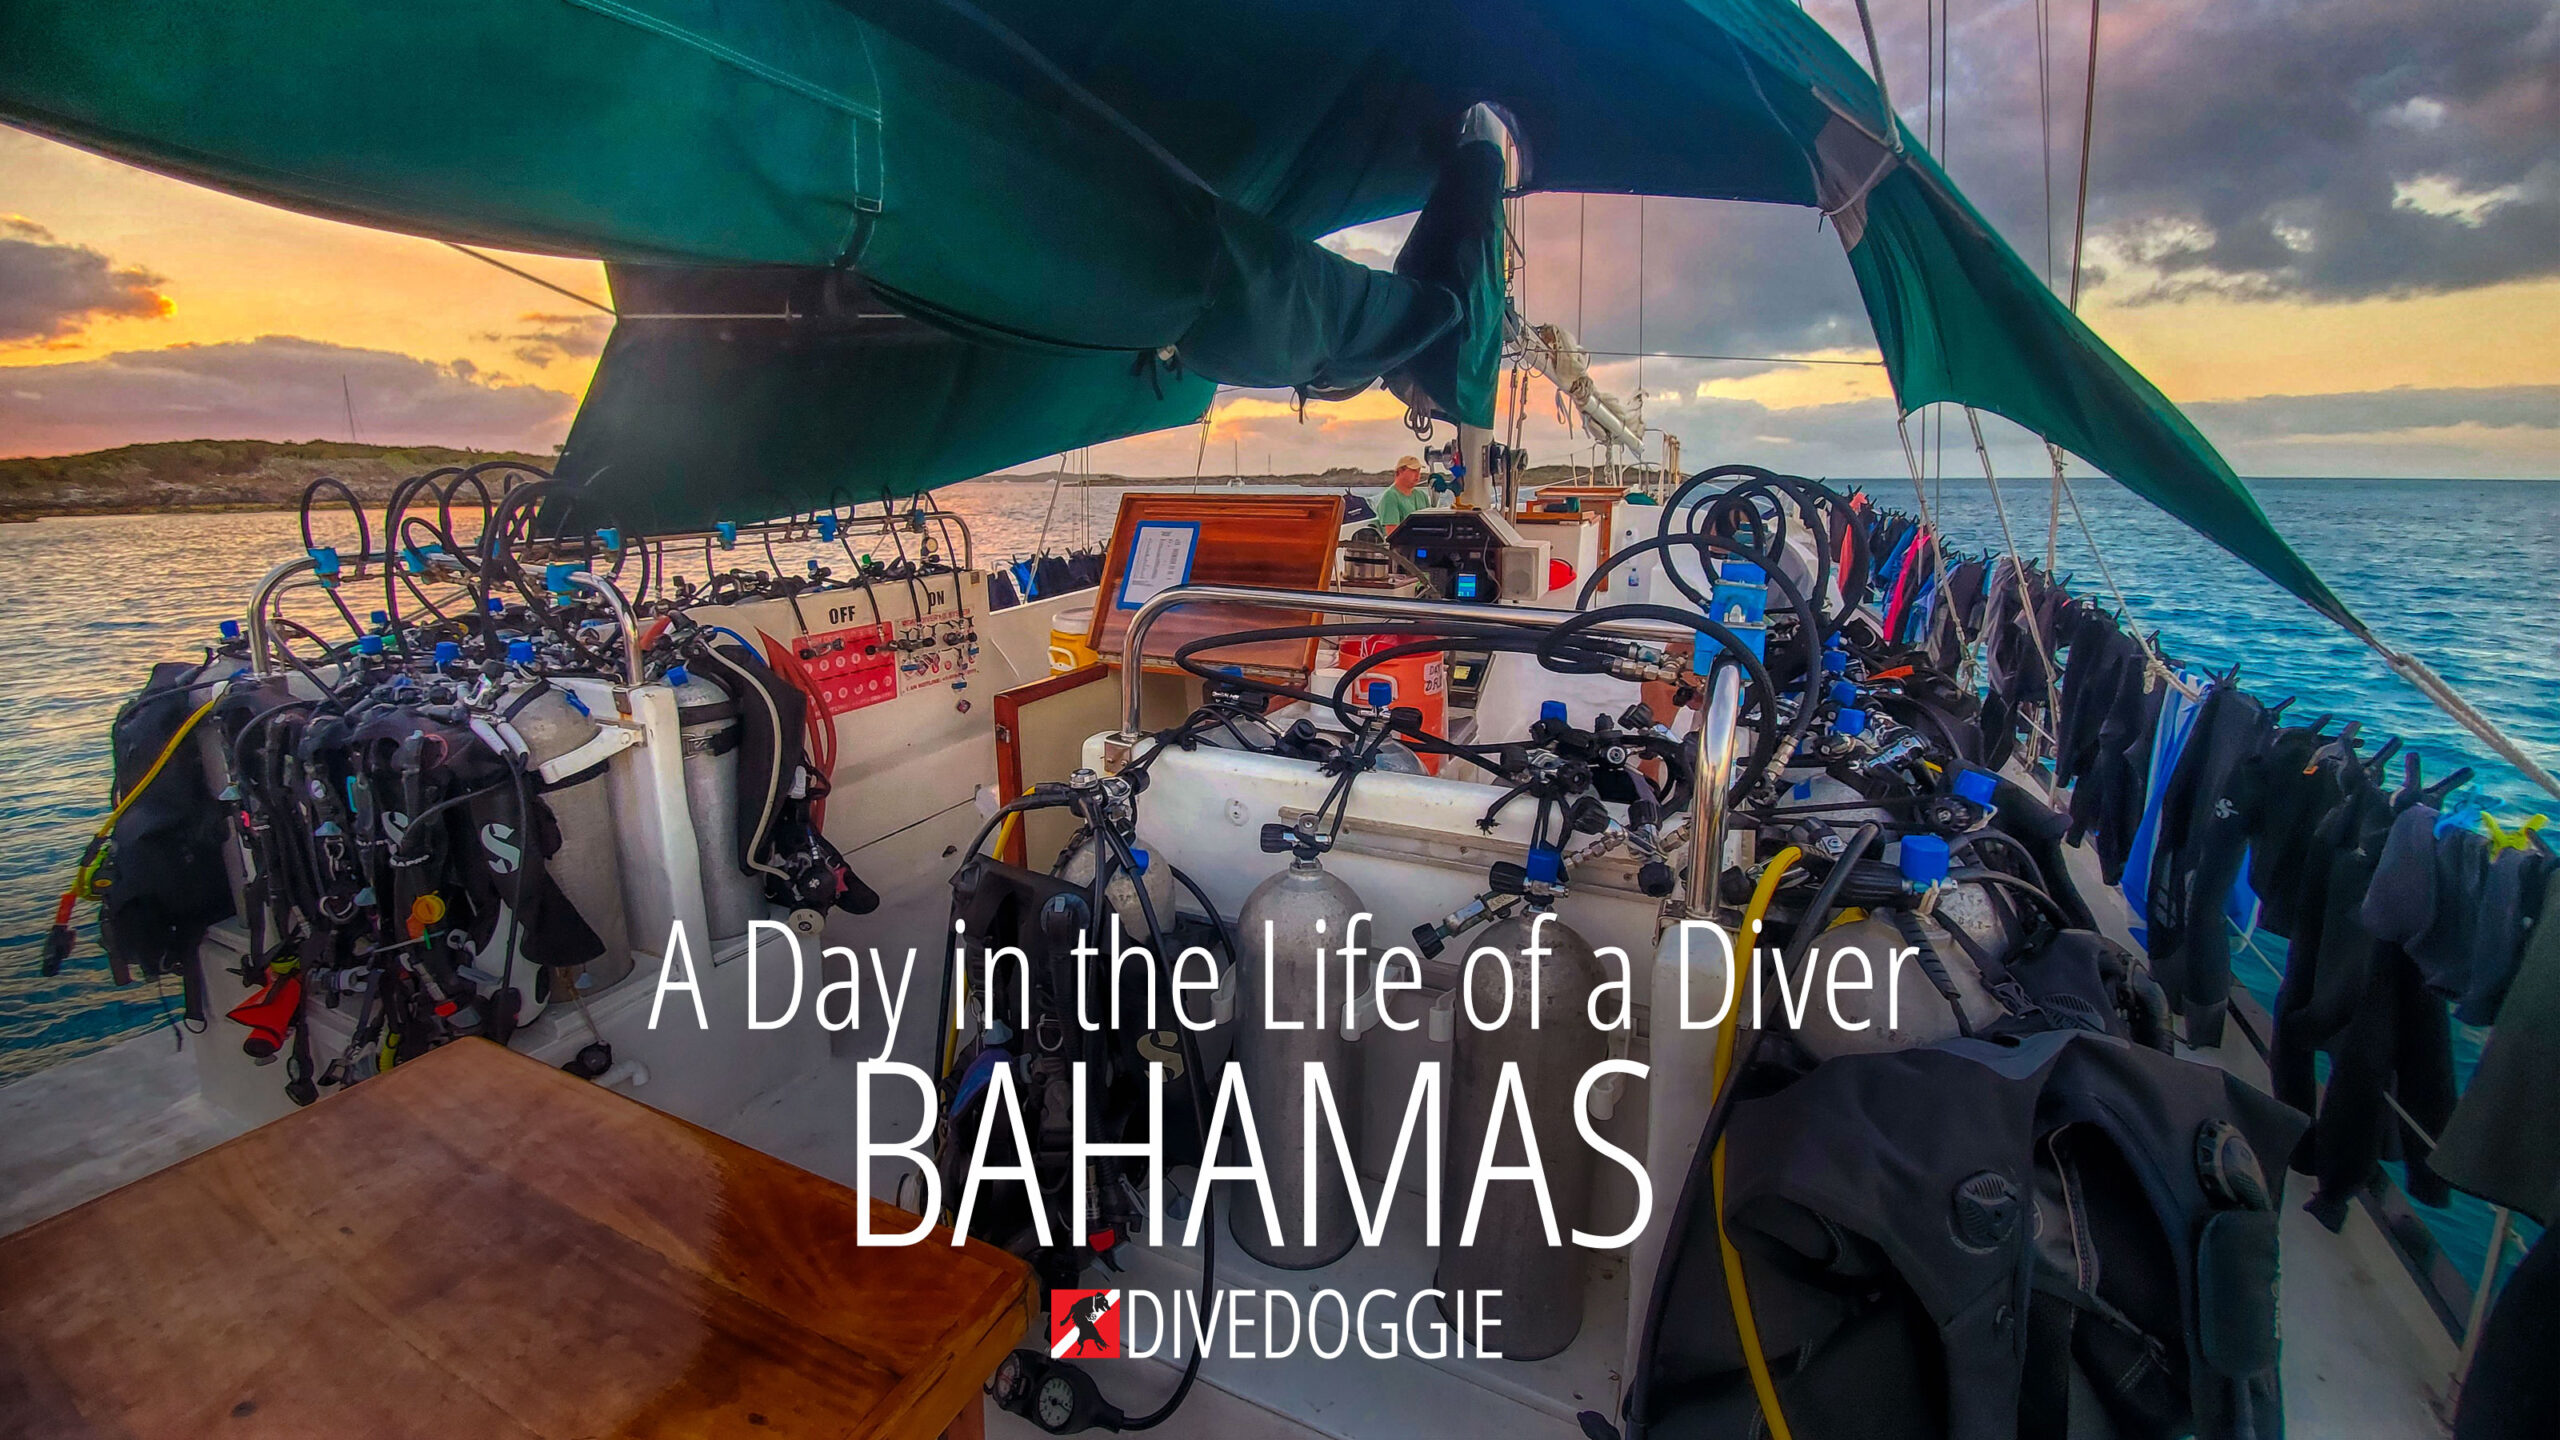 Day in the life of a diver Bahamas